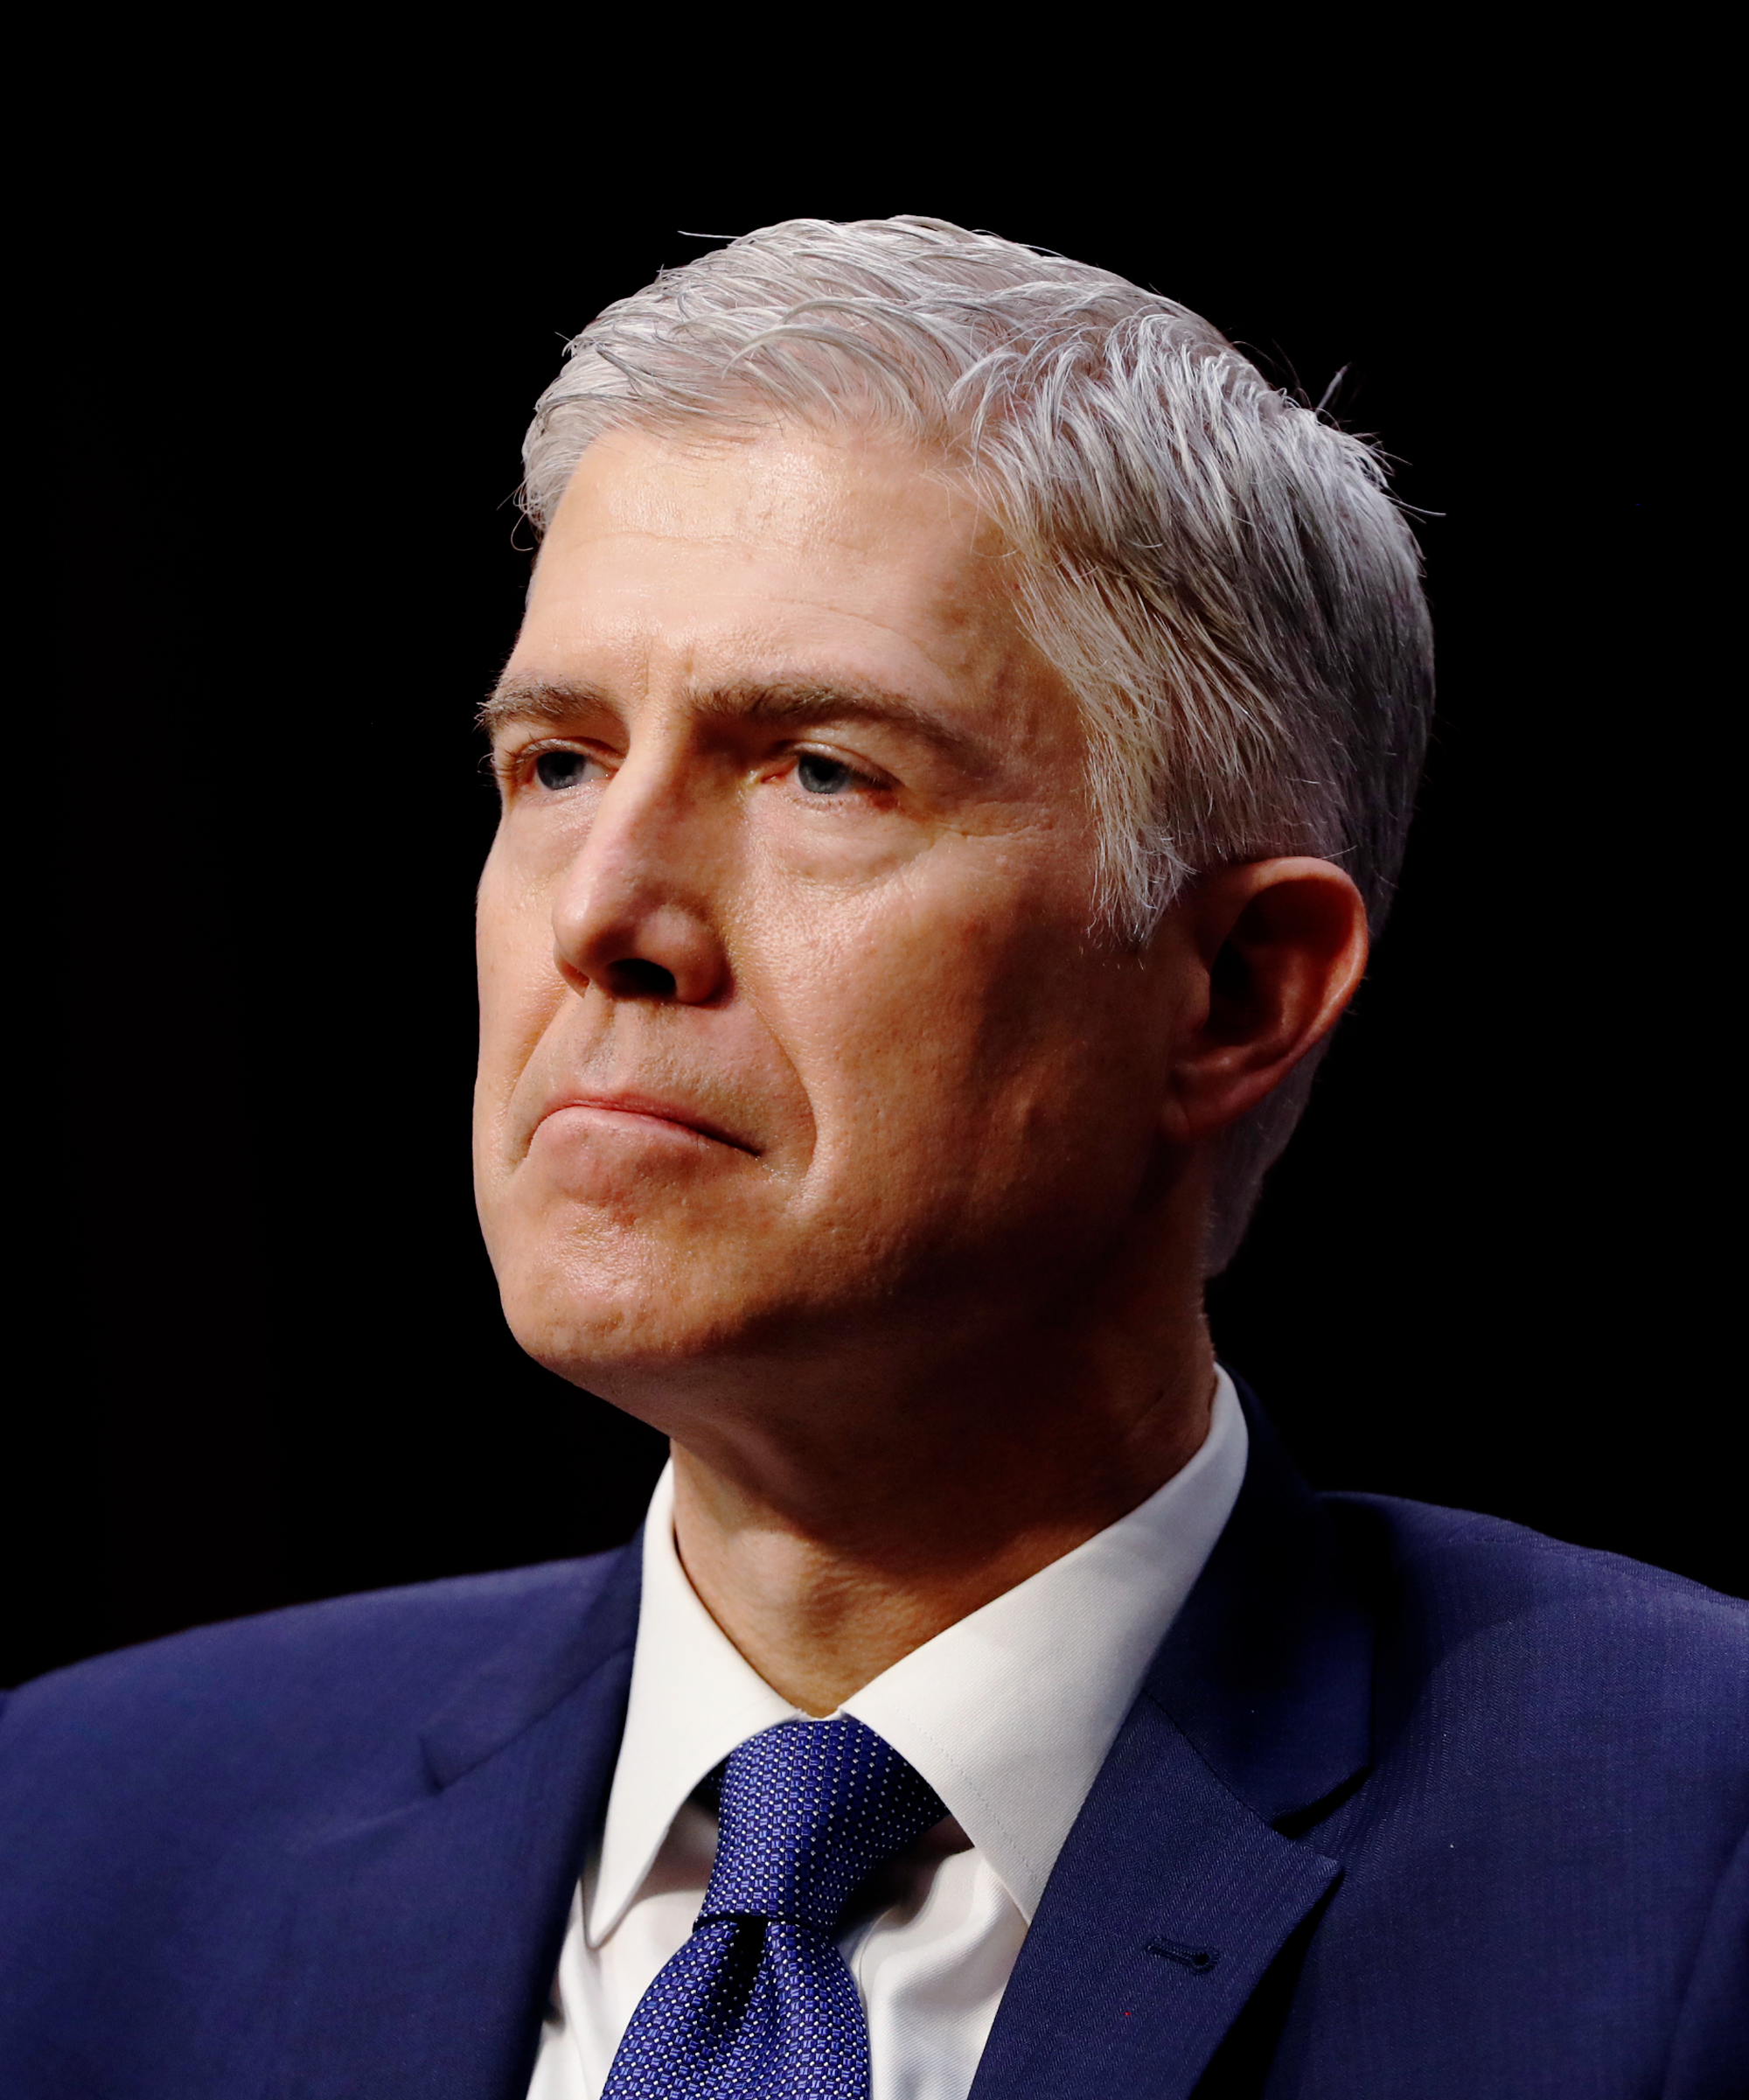 Pro-life, religious freedom leaders cheer confirmation of Neil Gorsuch